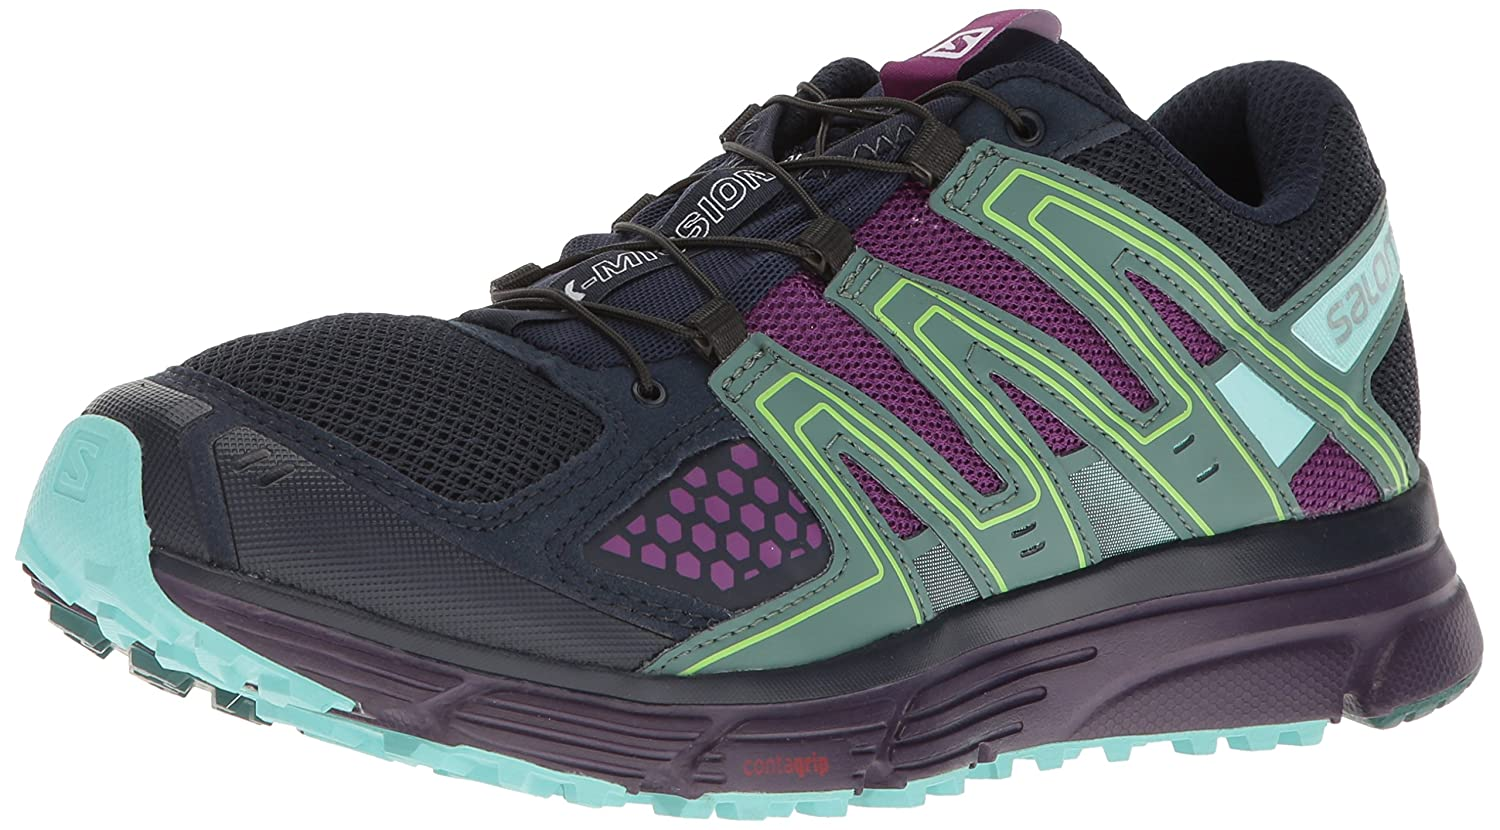 Salomon Women's X-Mission 3 W-w B01HD1WJDO 9.5 B(M) US|Navy Blazer/Grape Juice/North Atlantic